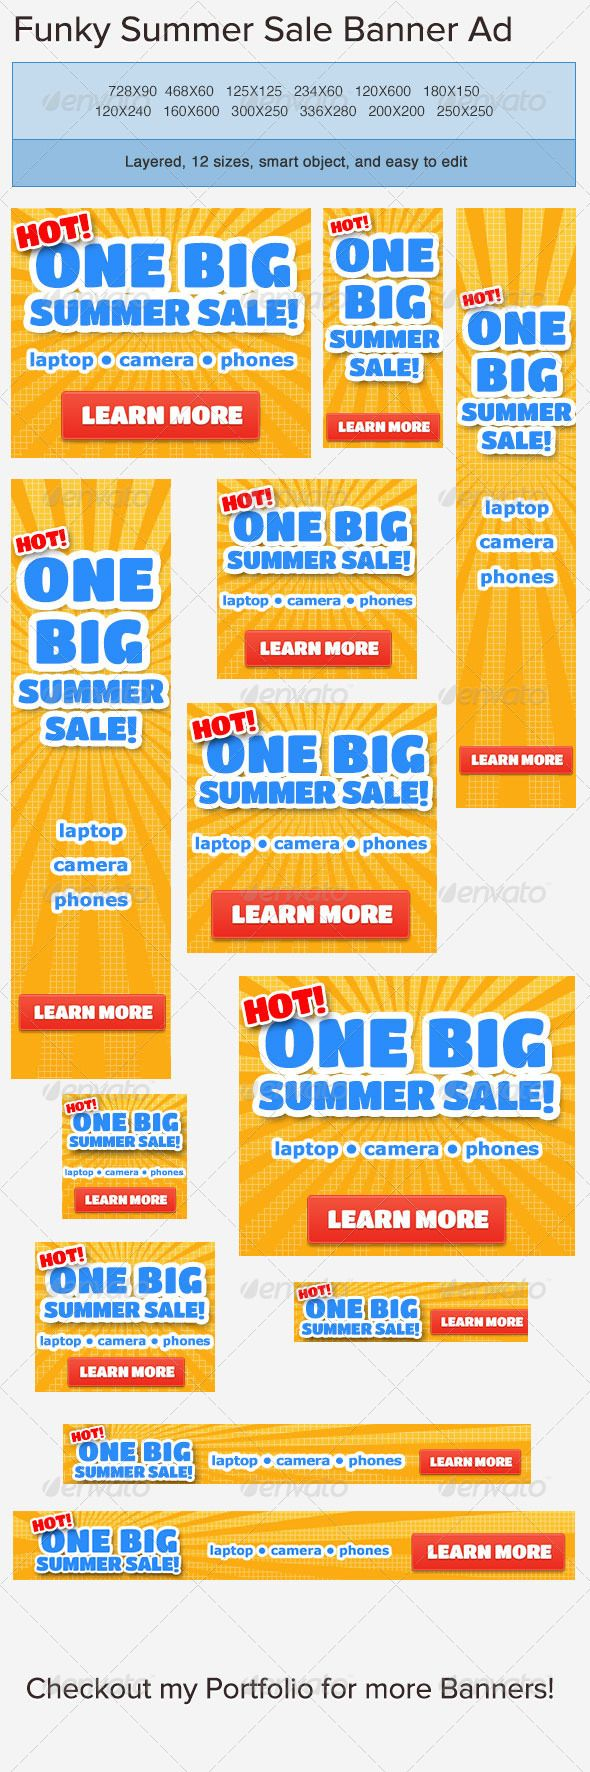 best images about ads banner template graphicriver on summer banner ad template